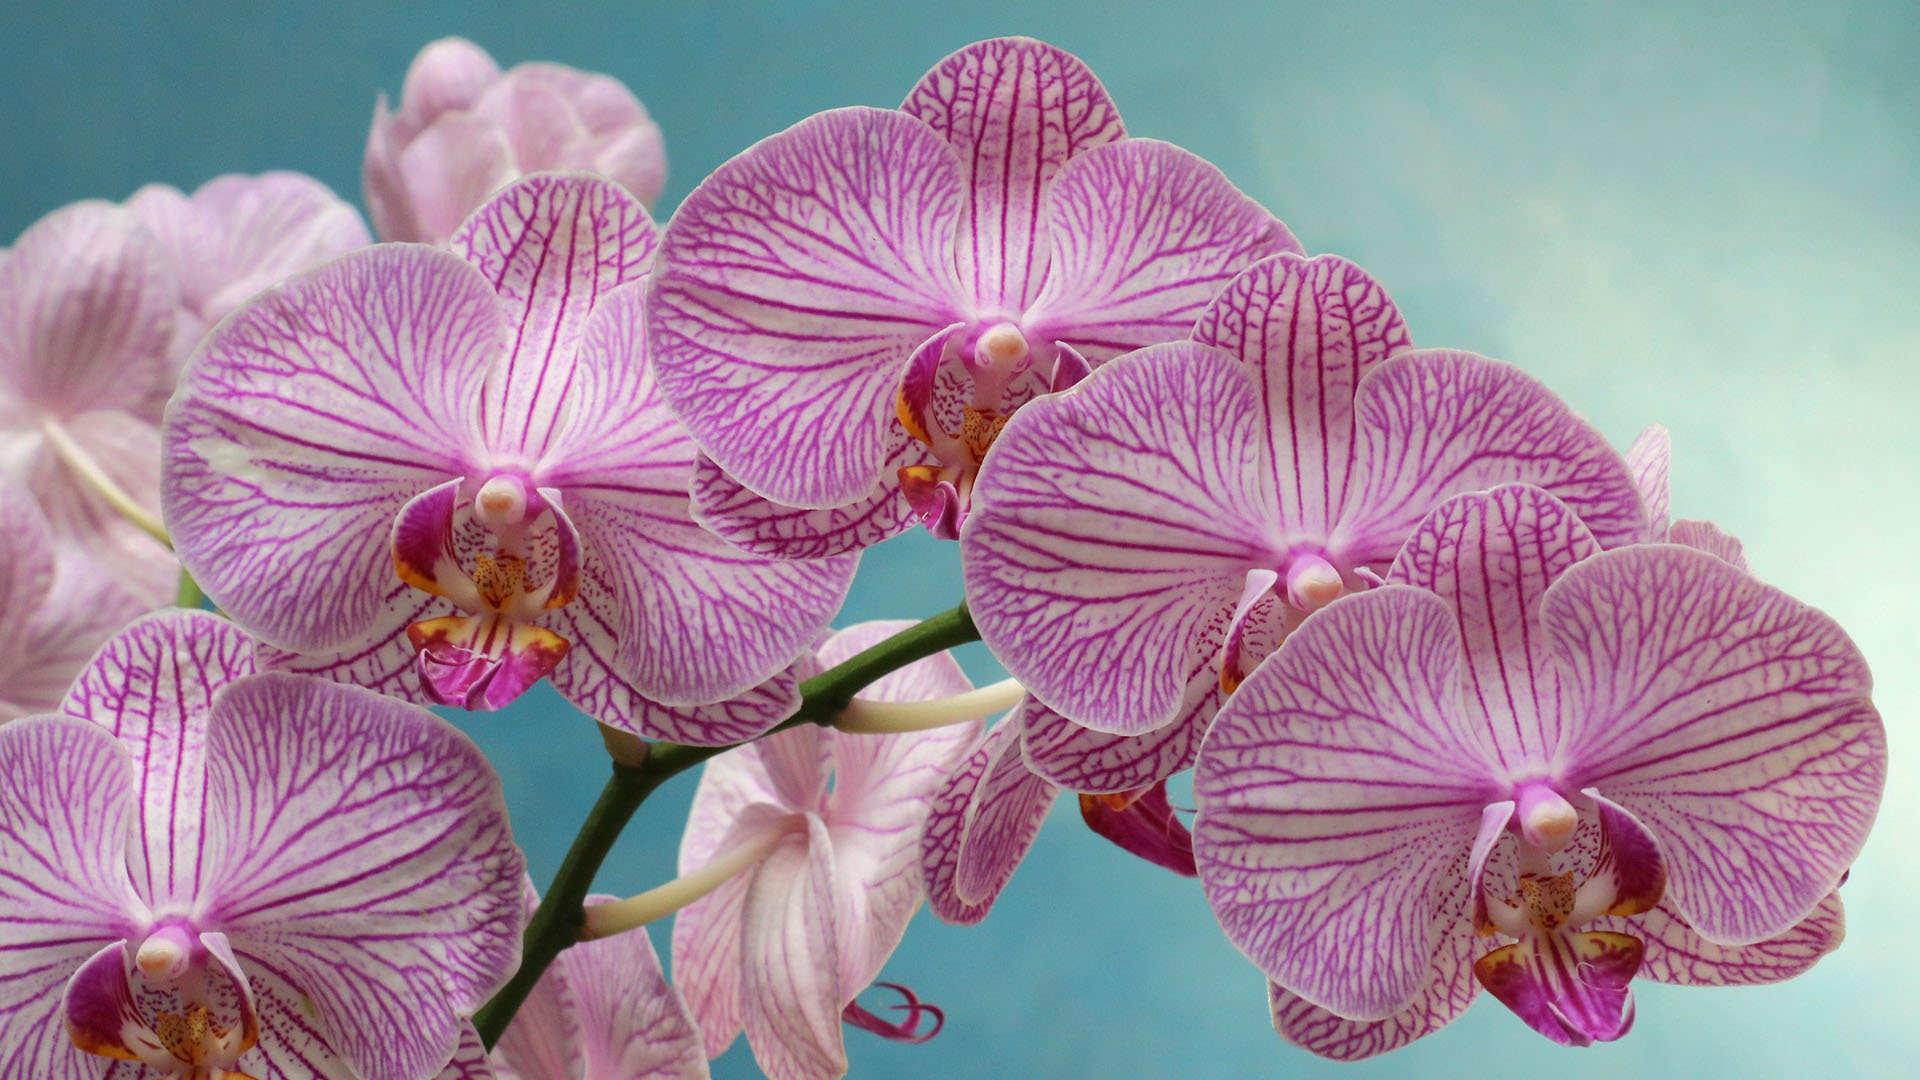 How To Care For Orchids Prairie Gardens Jeffrey Alans